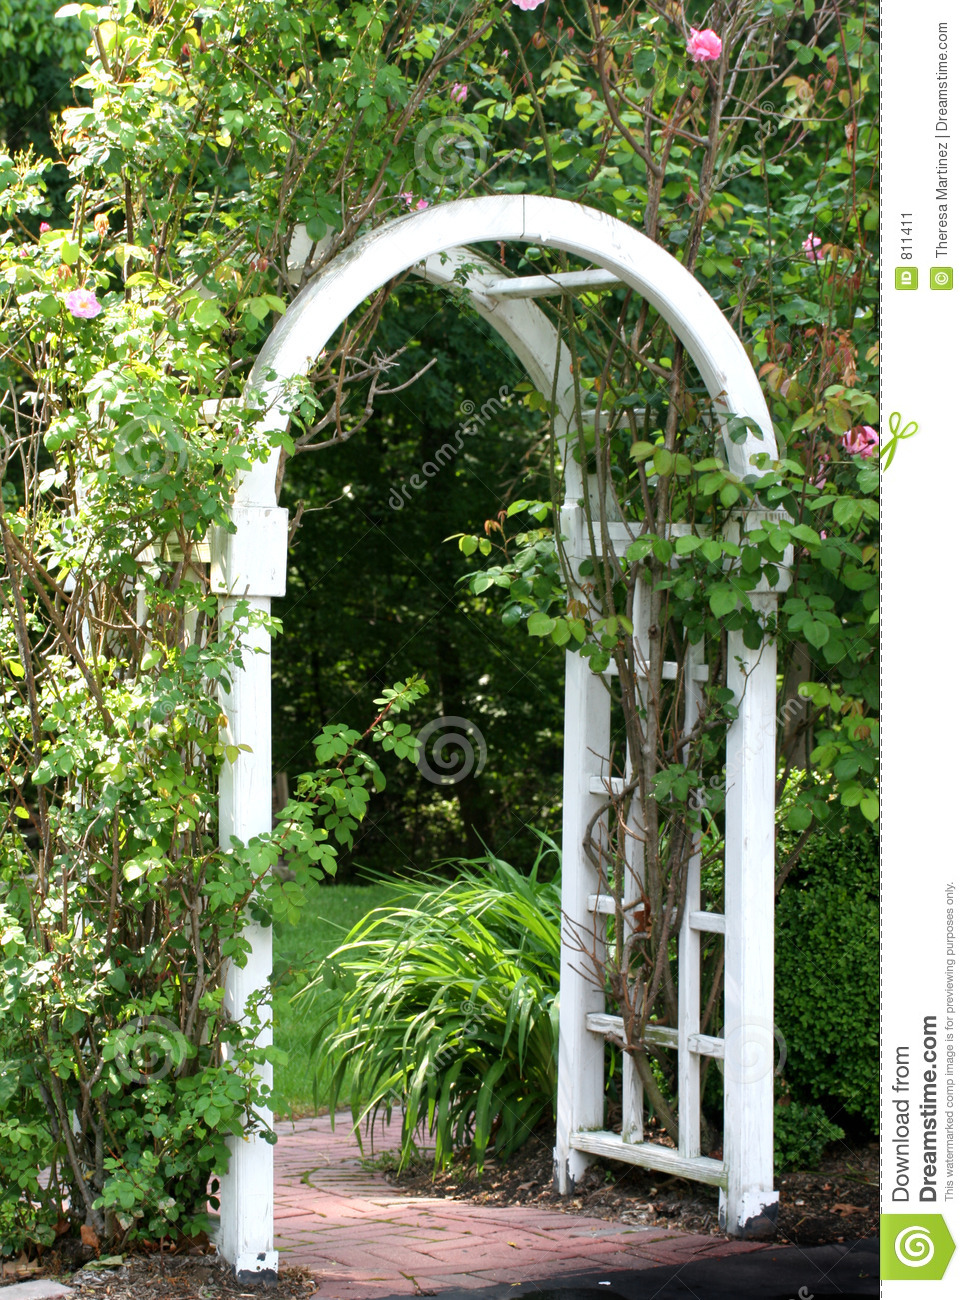 Garden Arbor Stock Image Image Of Trees Arch Entrance